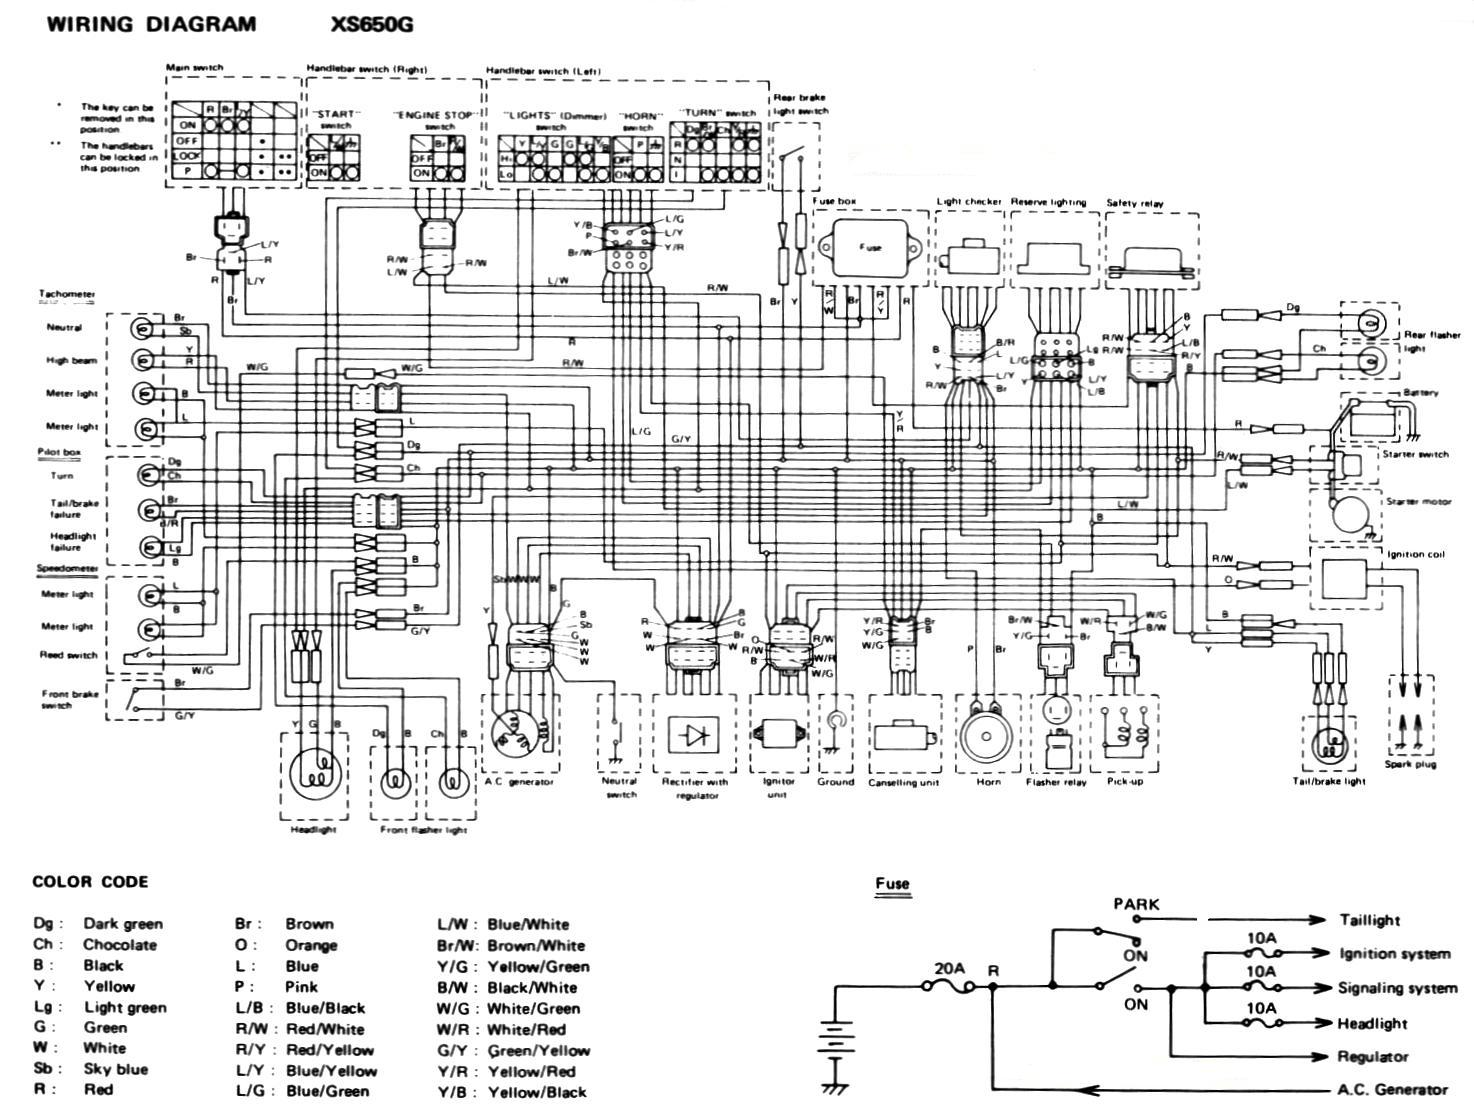 80XS650G gs1000 wiring diagram wiring diagrams schematics